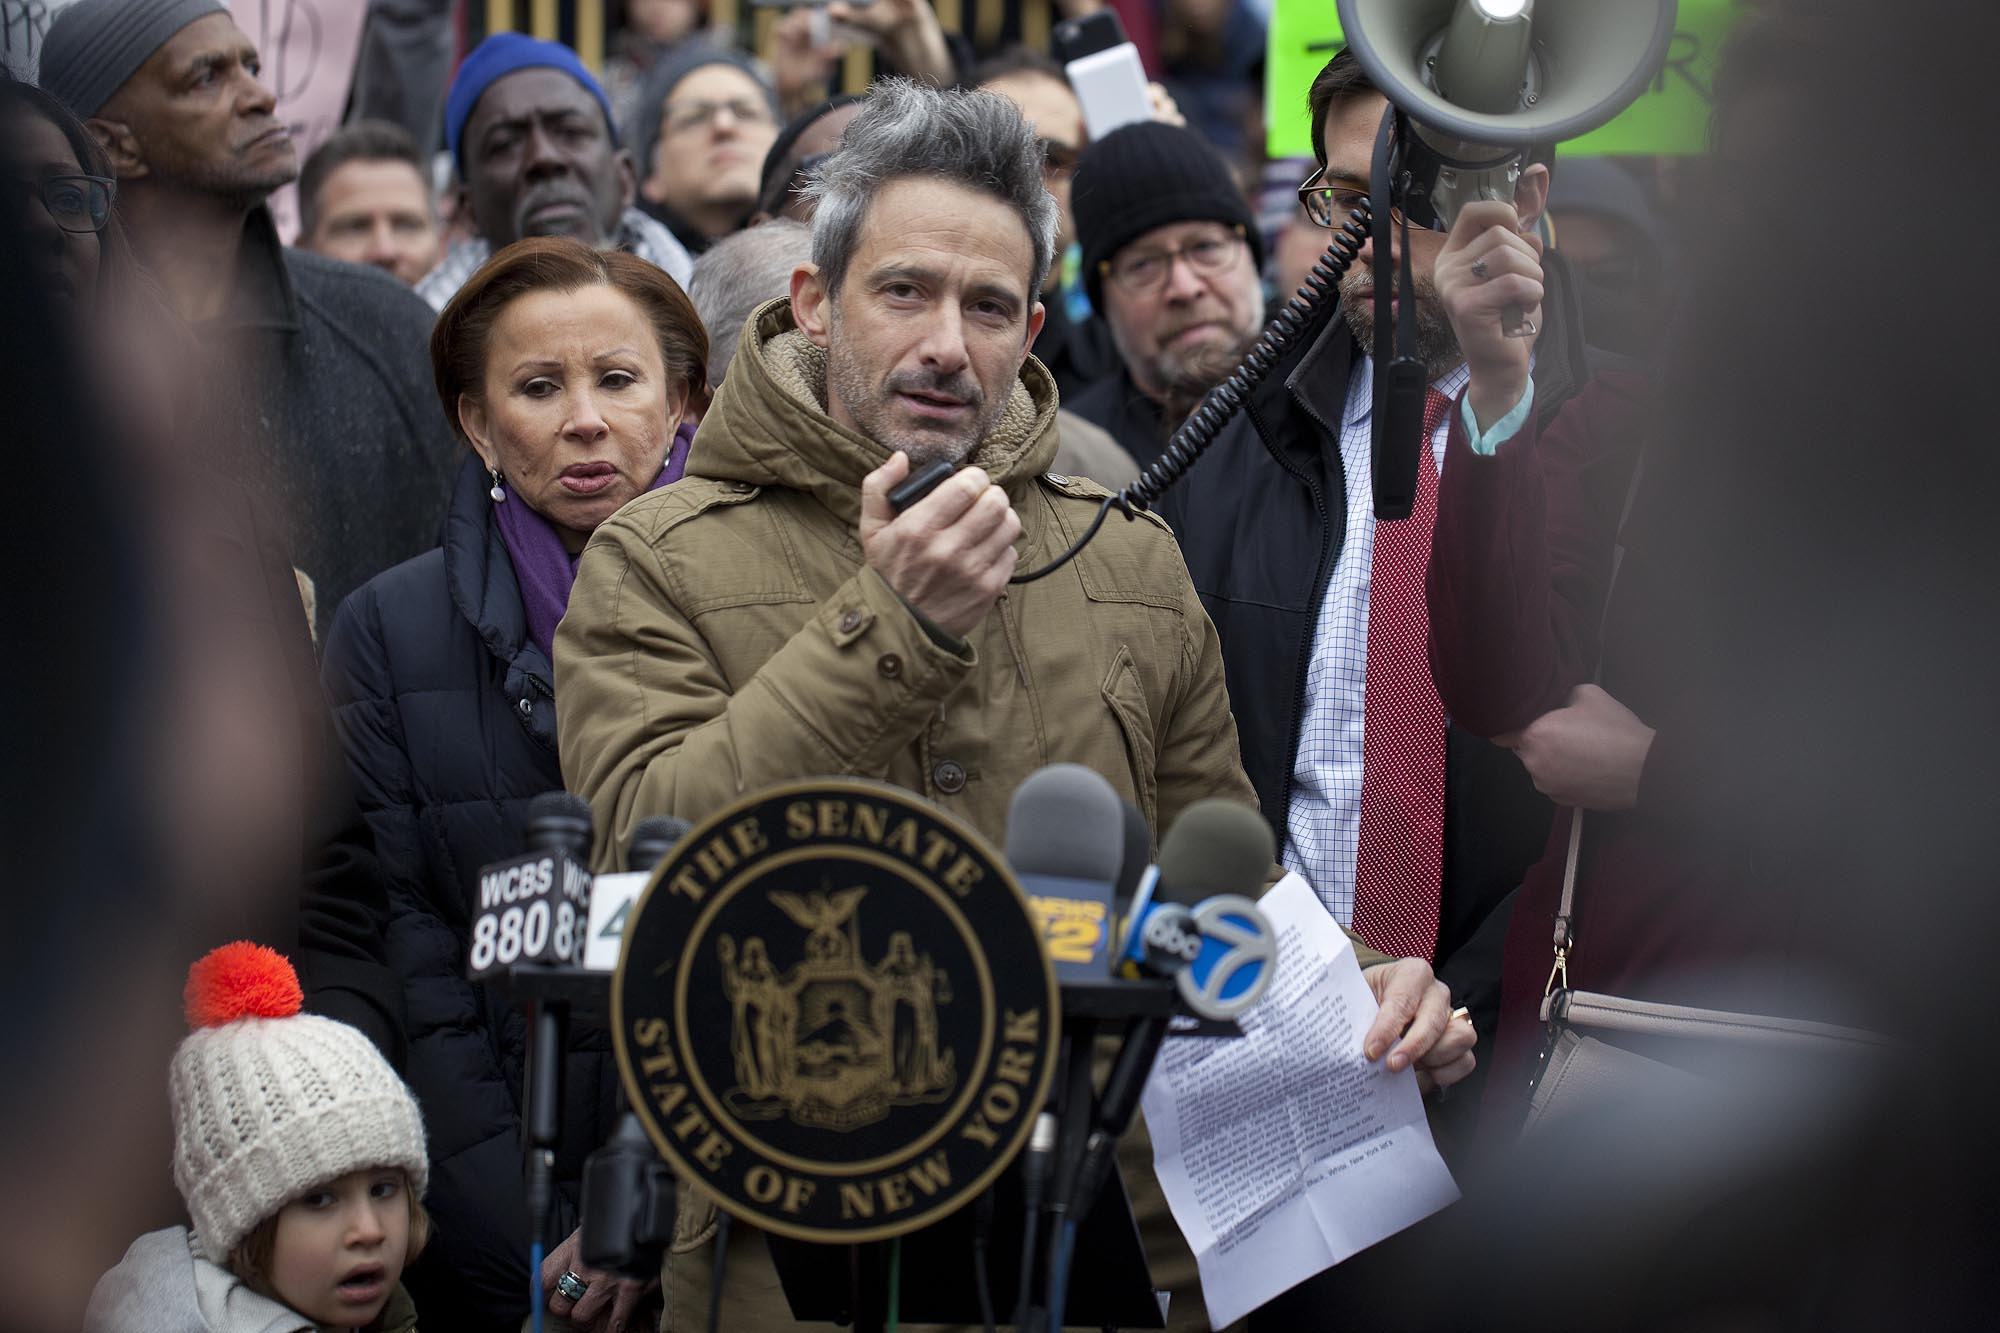 20.11.16: Ad-Rock (Beastie Boys) adressing a crowd of protesters after Adam Yauch playground in Brooklyn was vandalized with swastikas and pro-trump slogans.